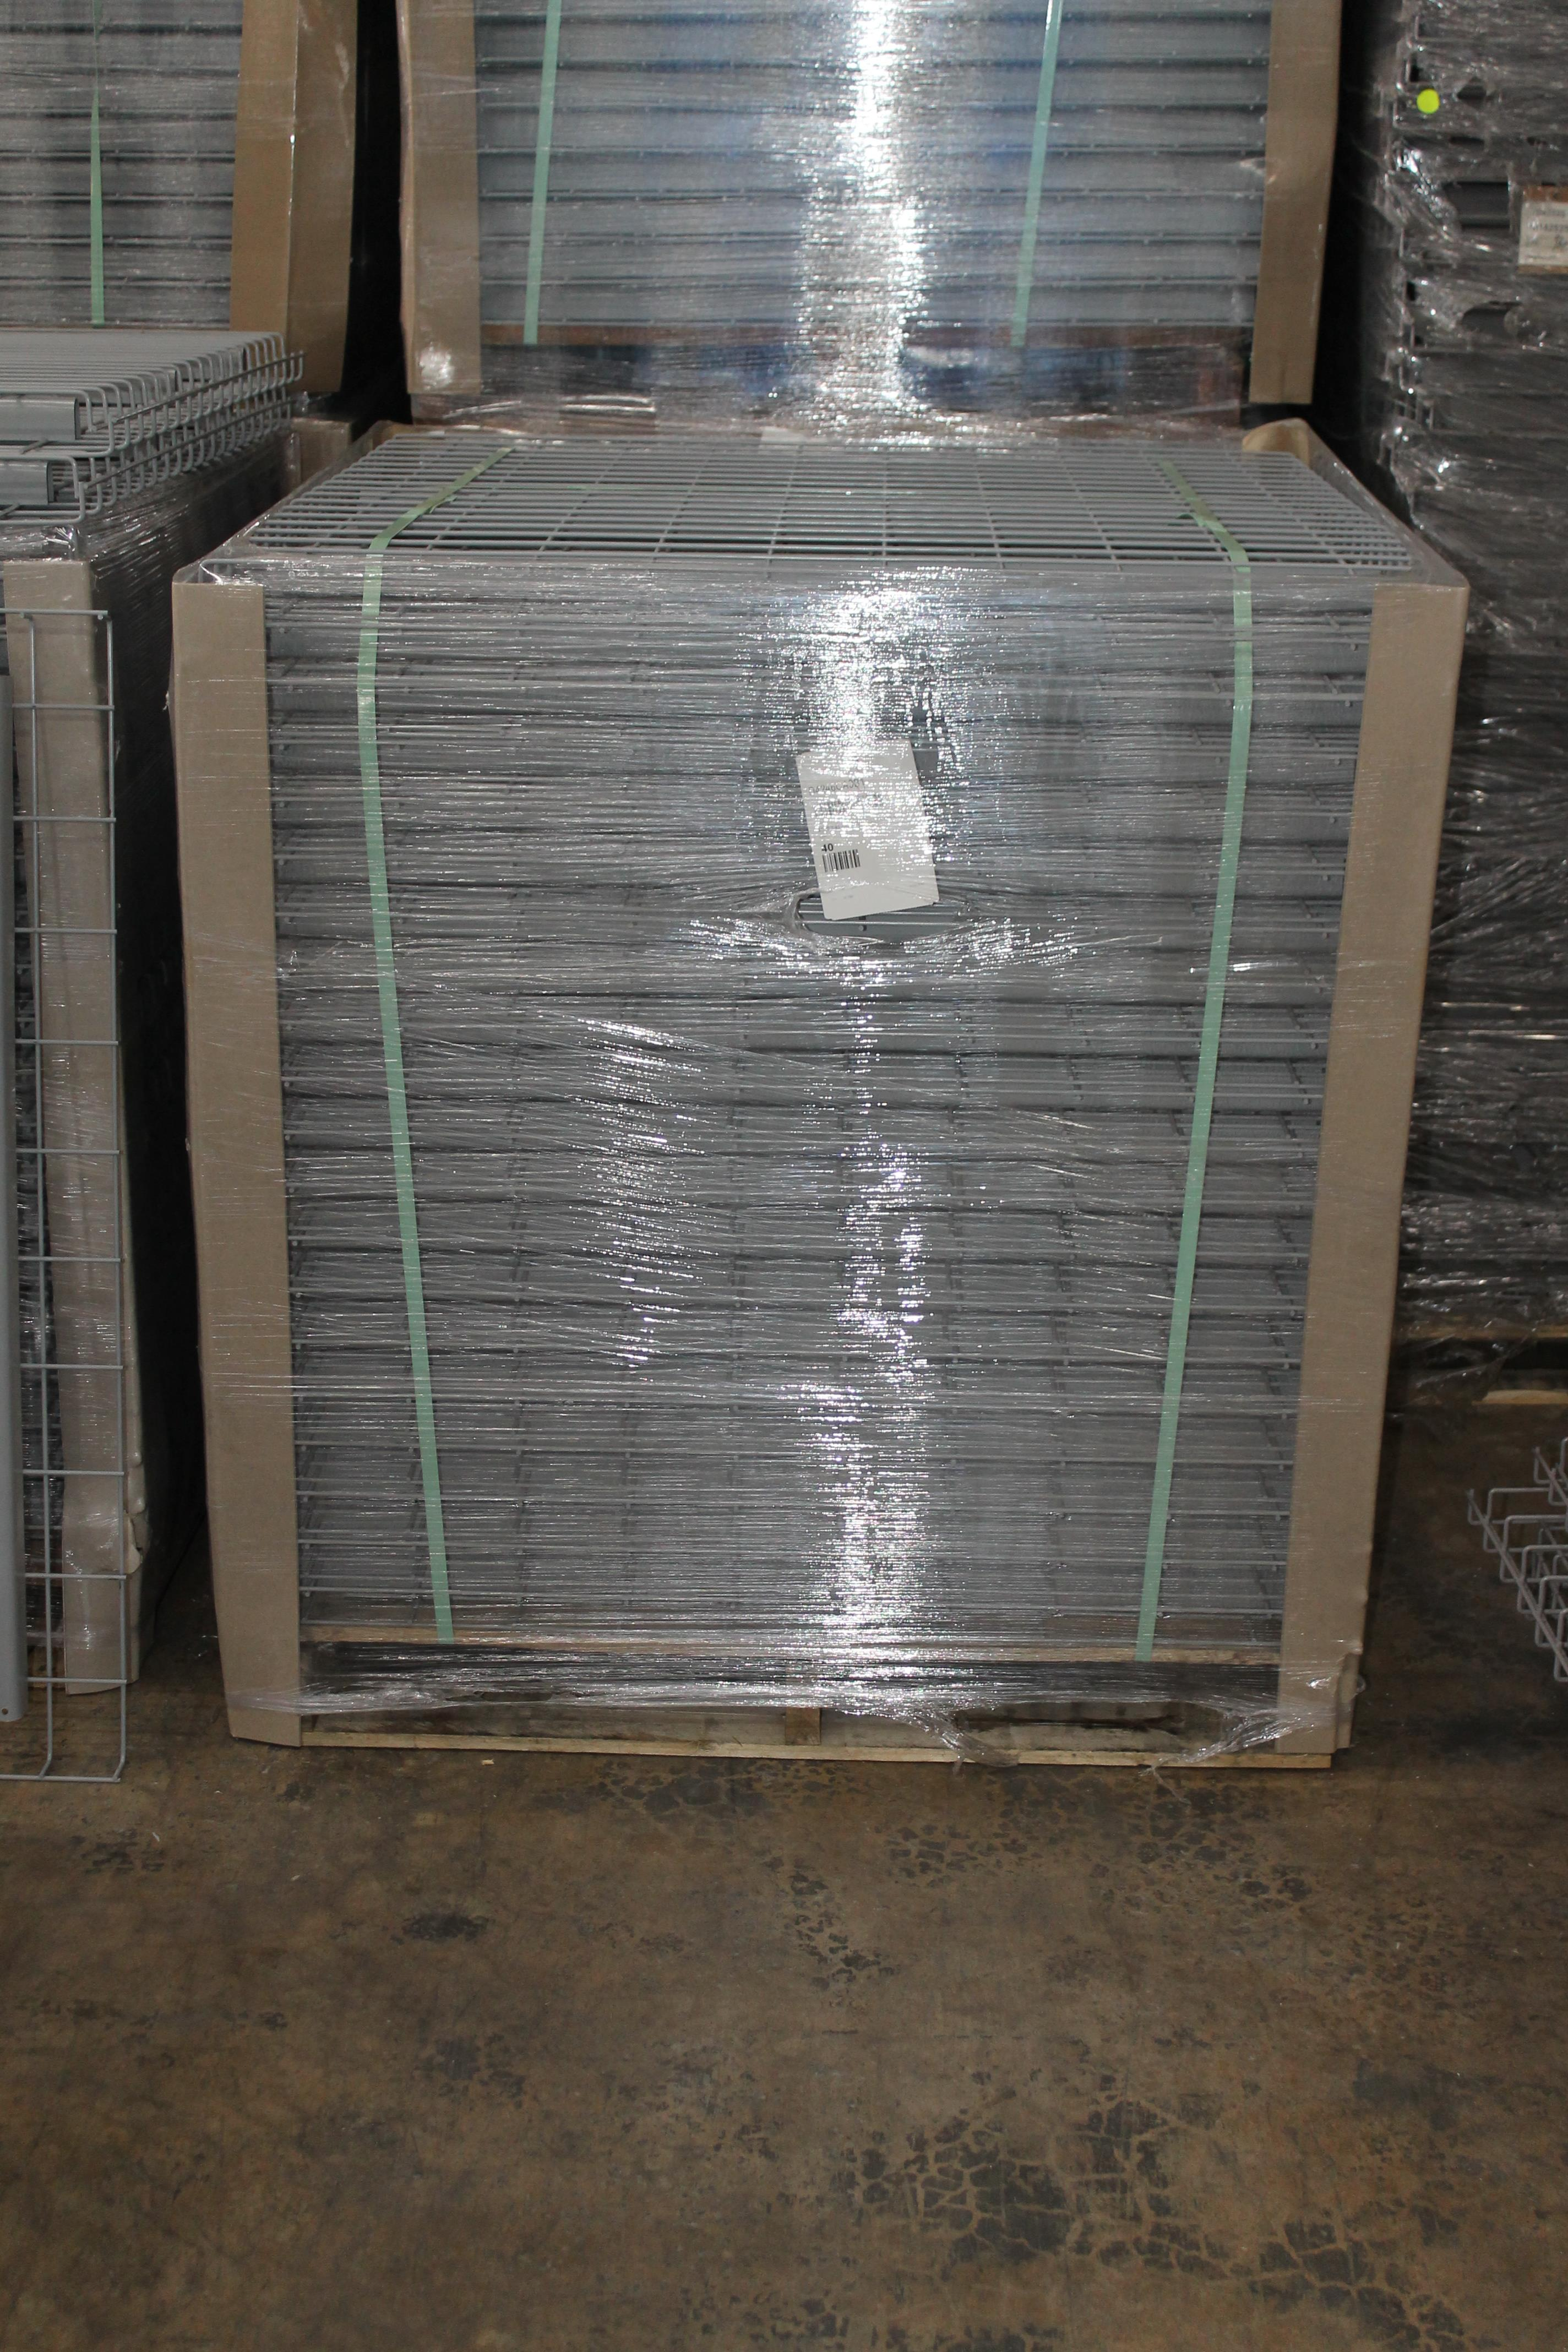 "NEW 80 PCS OF STANDARD 42"" X 46"" WIREDECK - 2200 LBS CAPACITY - Image 2 of 2"